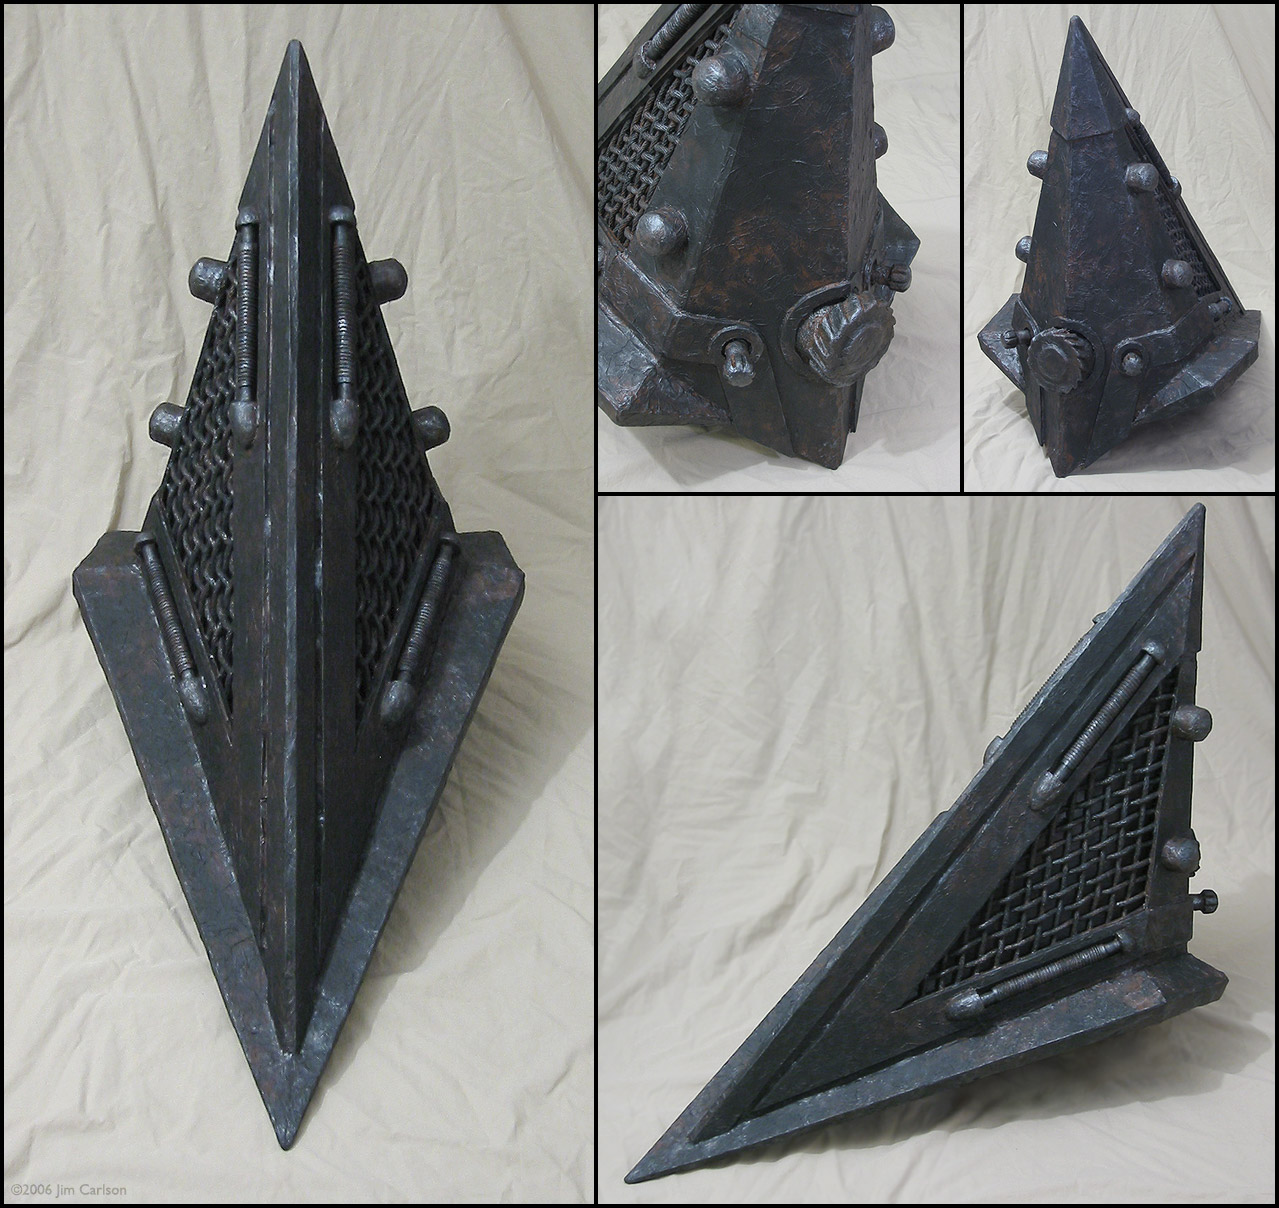 Pyramid Head helmet detail